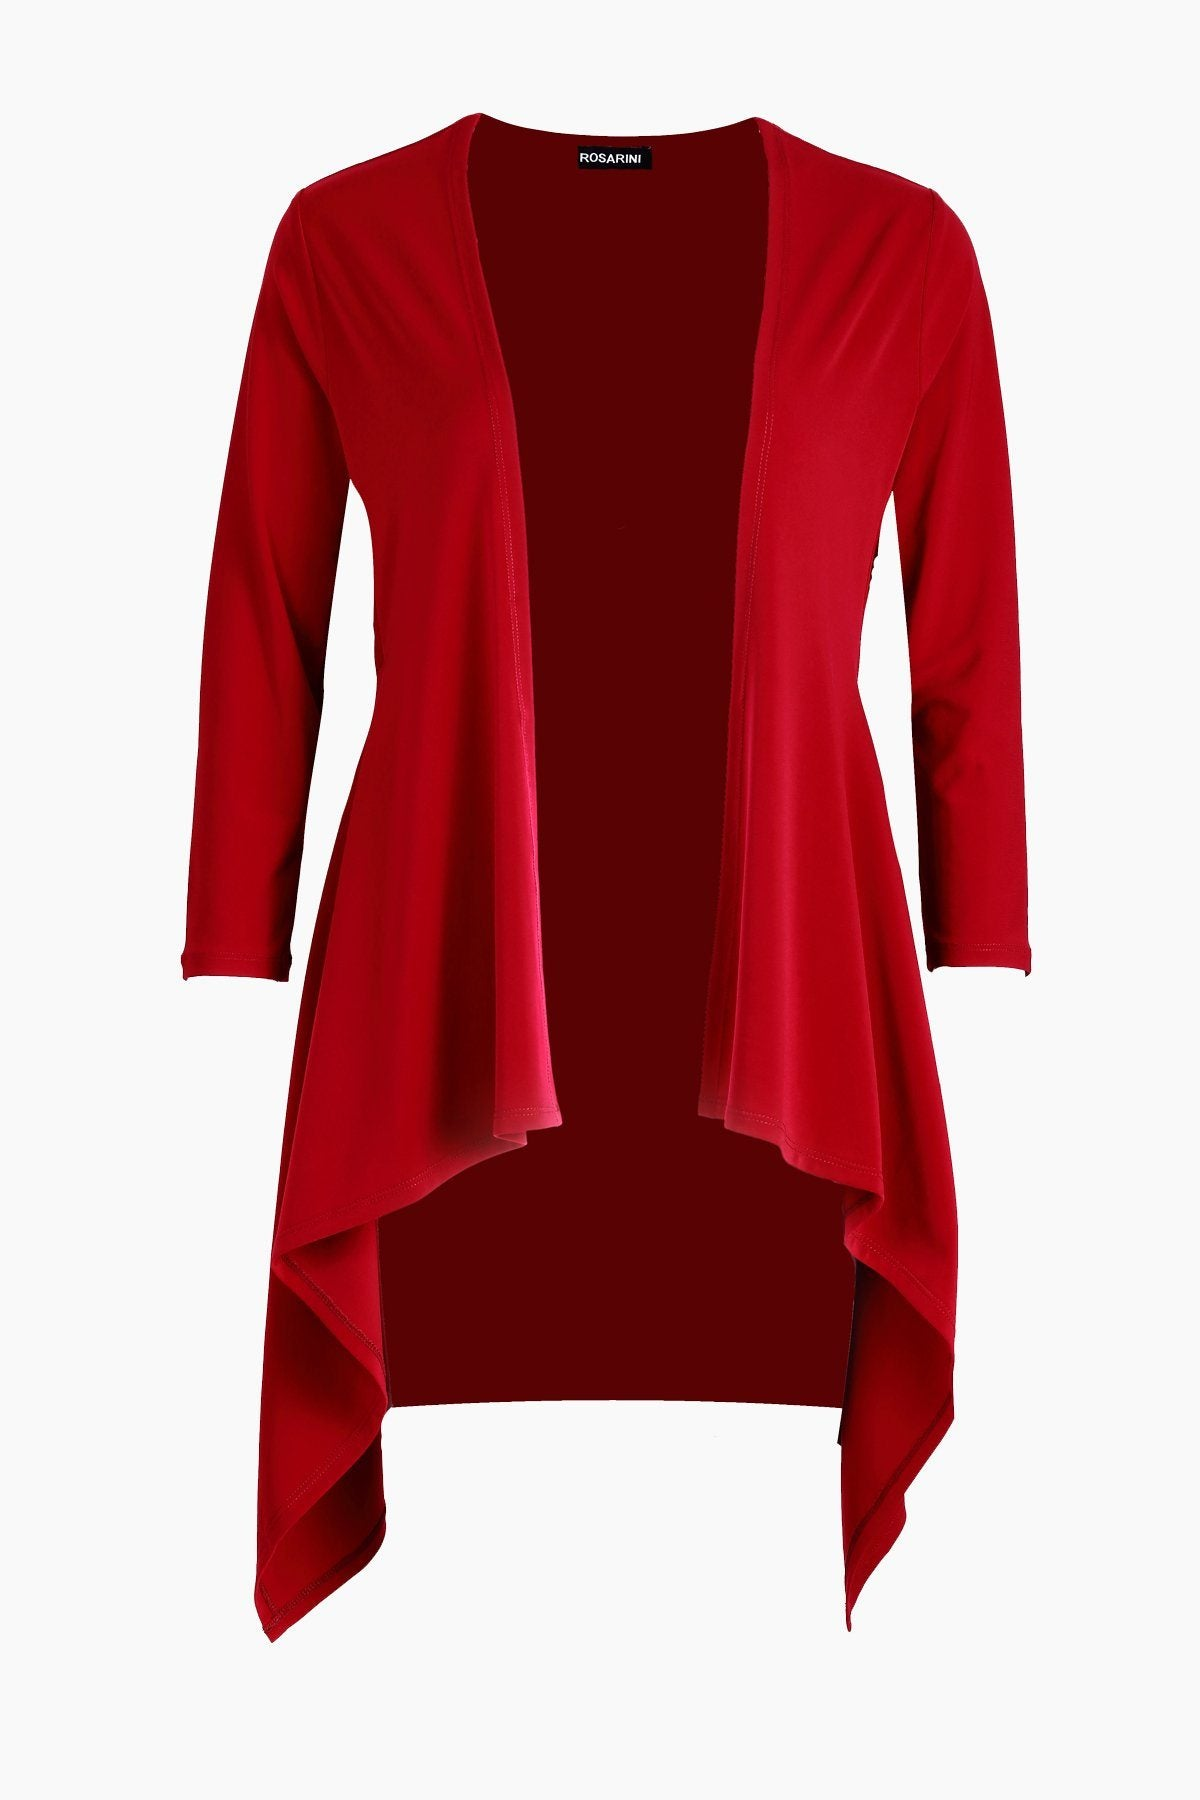 Women's Red Long Sleeve Contour Cardigan Rosarini